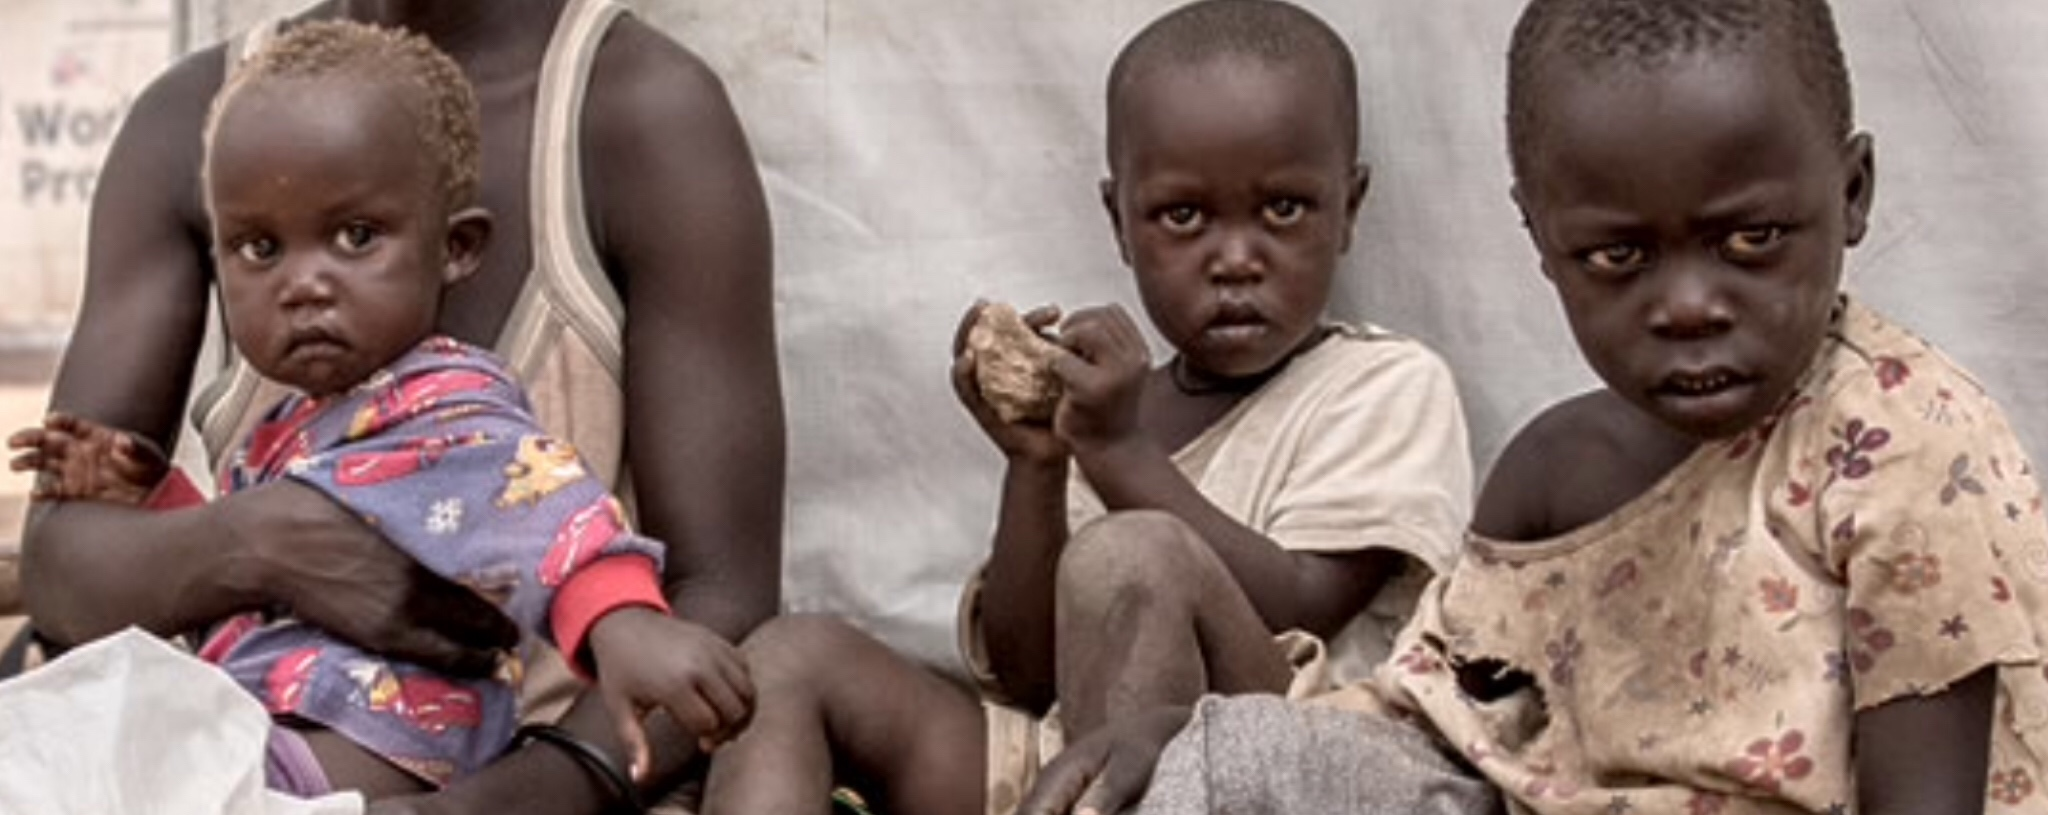 EU aid to Africa hunger emergency